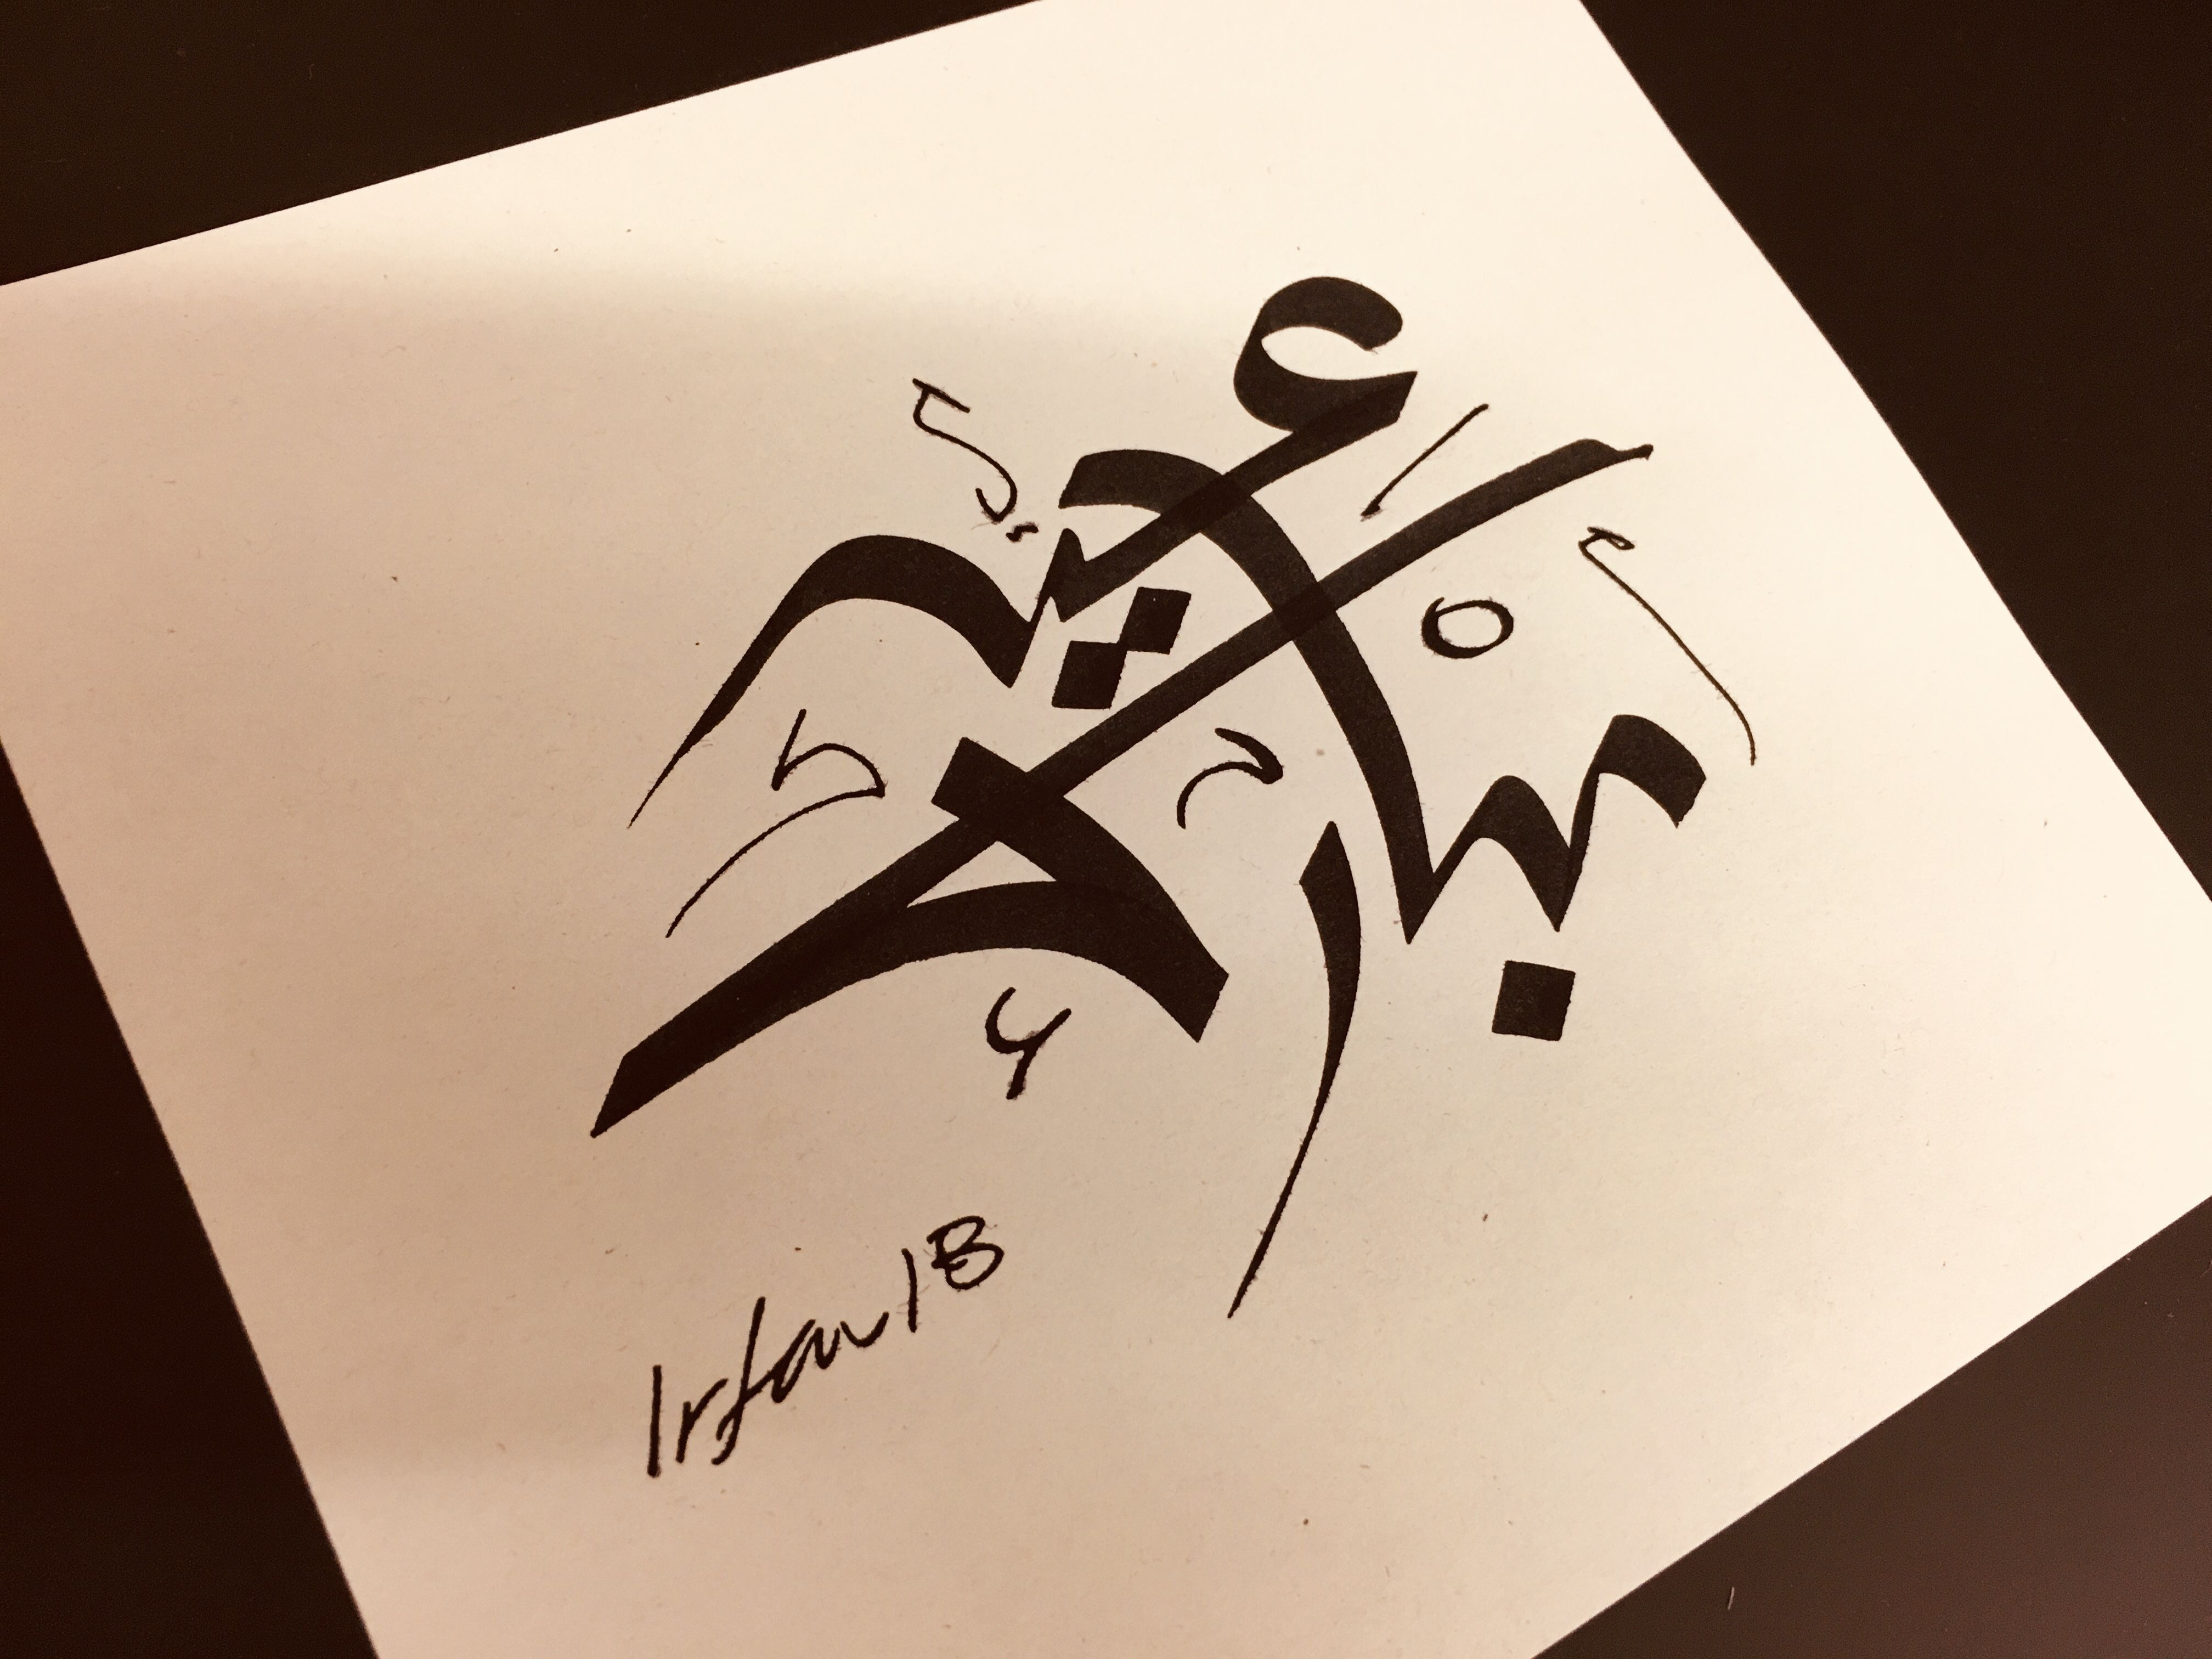 Maryam In Arabic Meaning - Year of Clean Water